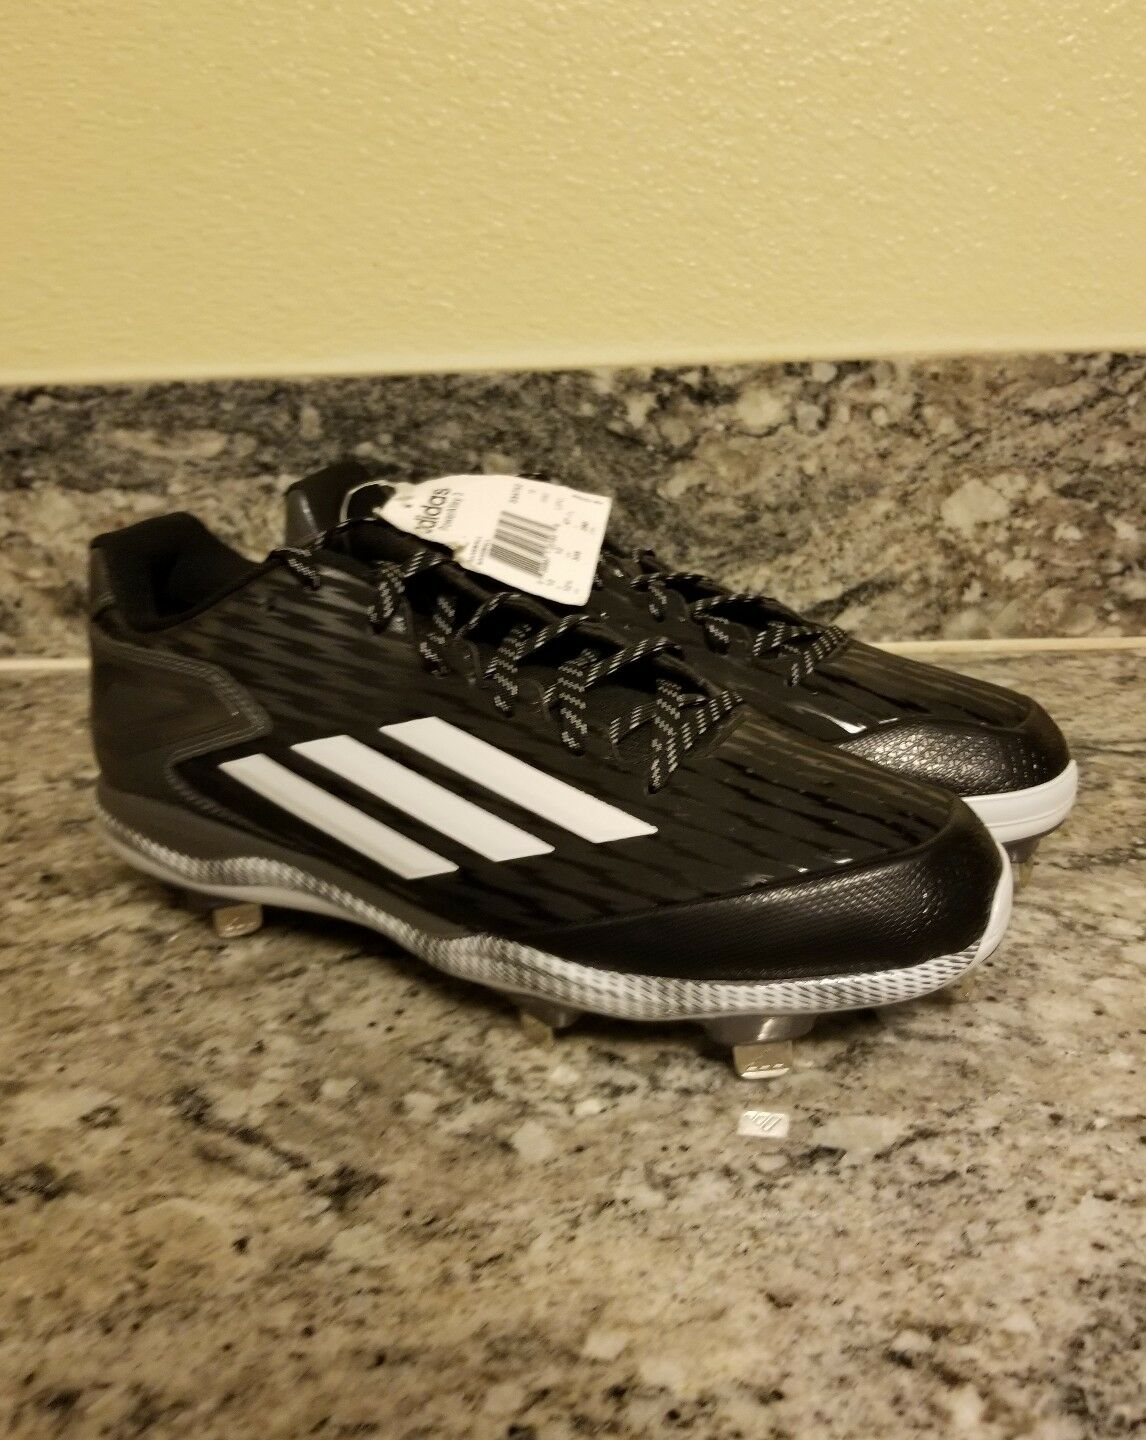 Adidas Mens Size 12.5 Cleats Baseball Poweralley 3 shoes METAL S84762